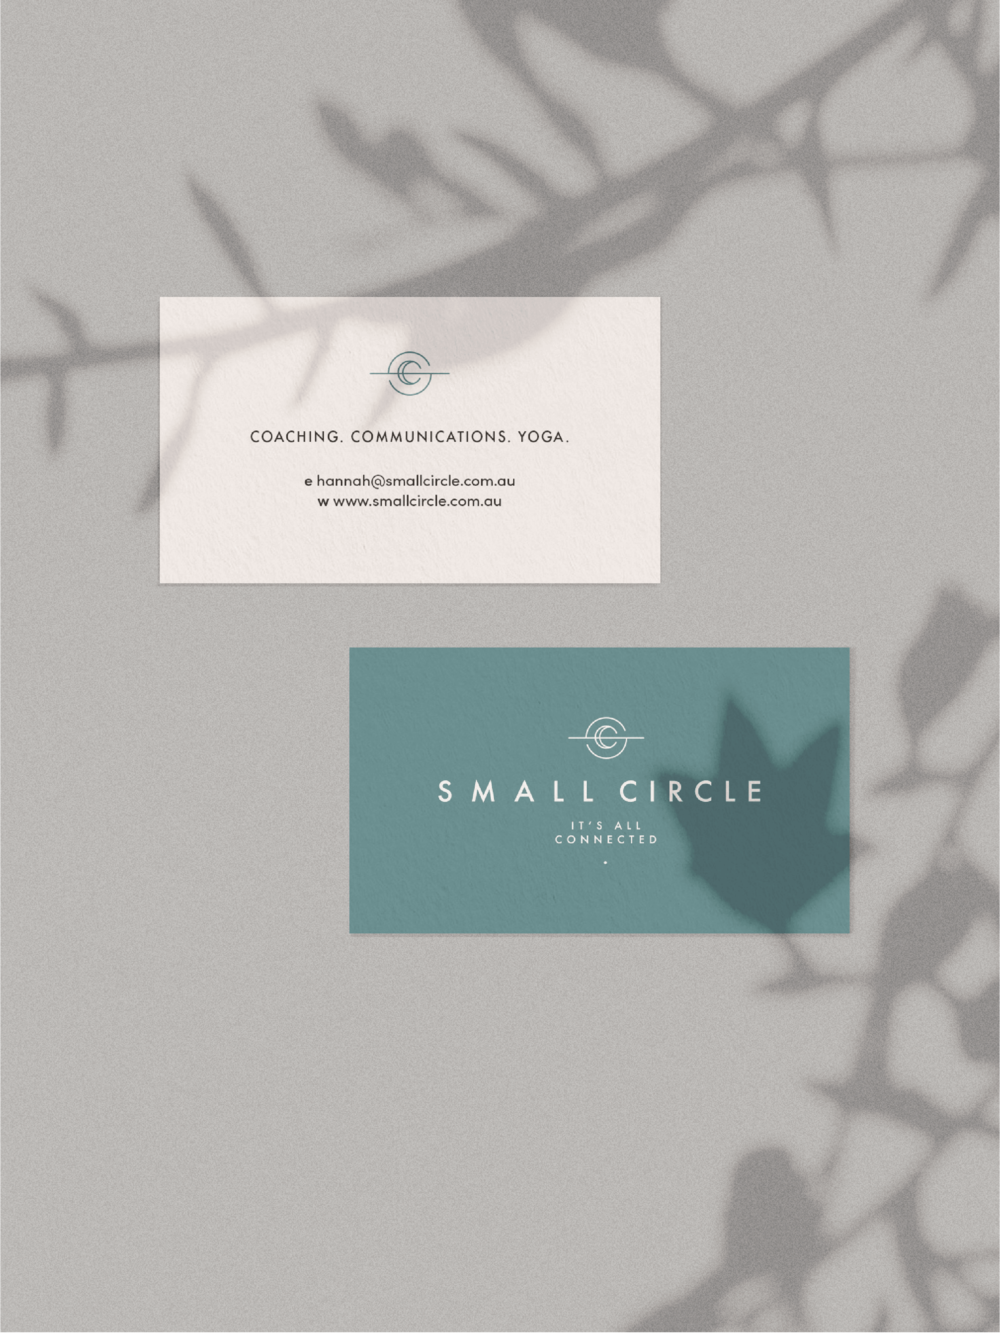 Small Circle business cards - January Made Design